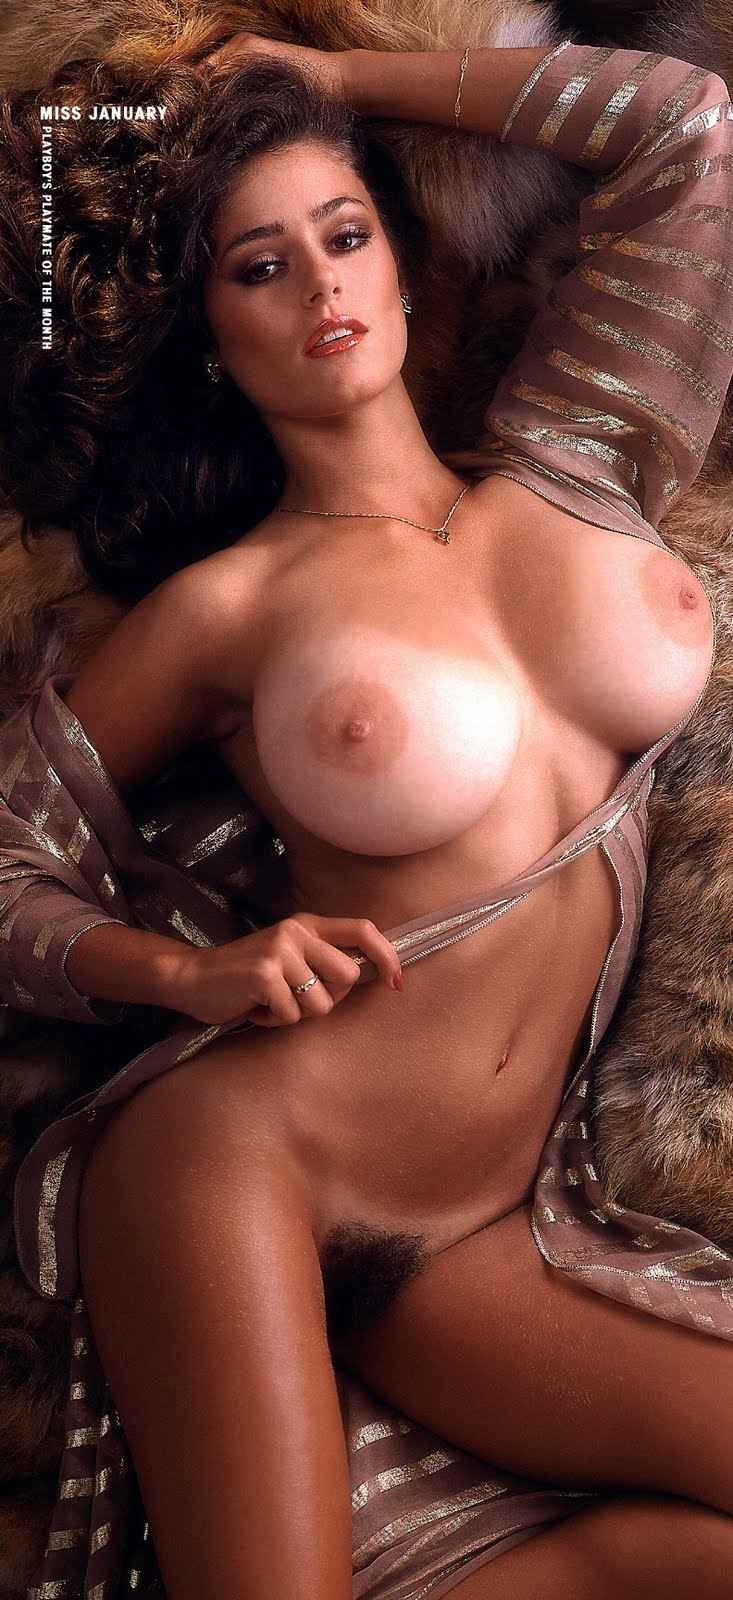 karen price playboy